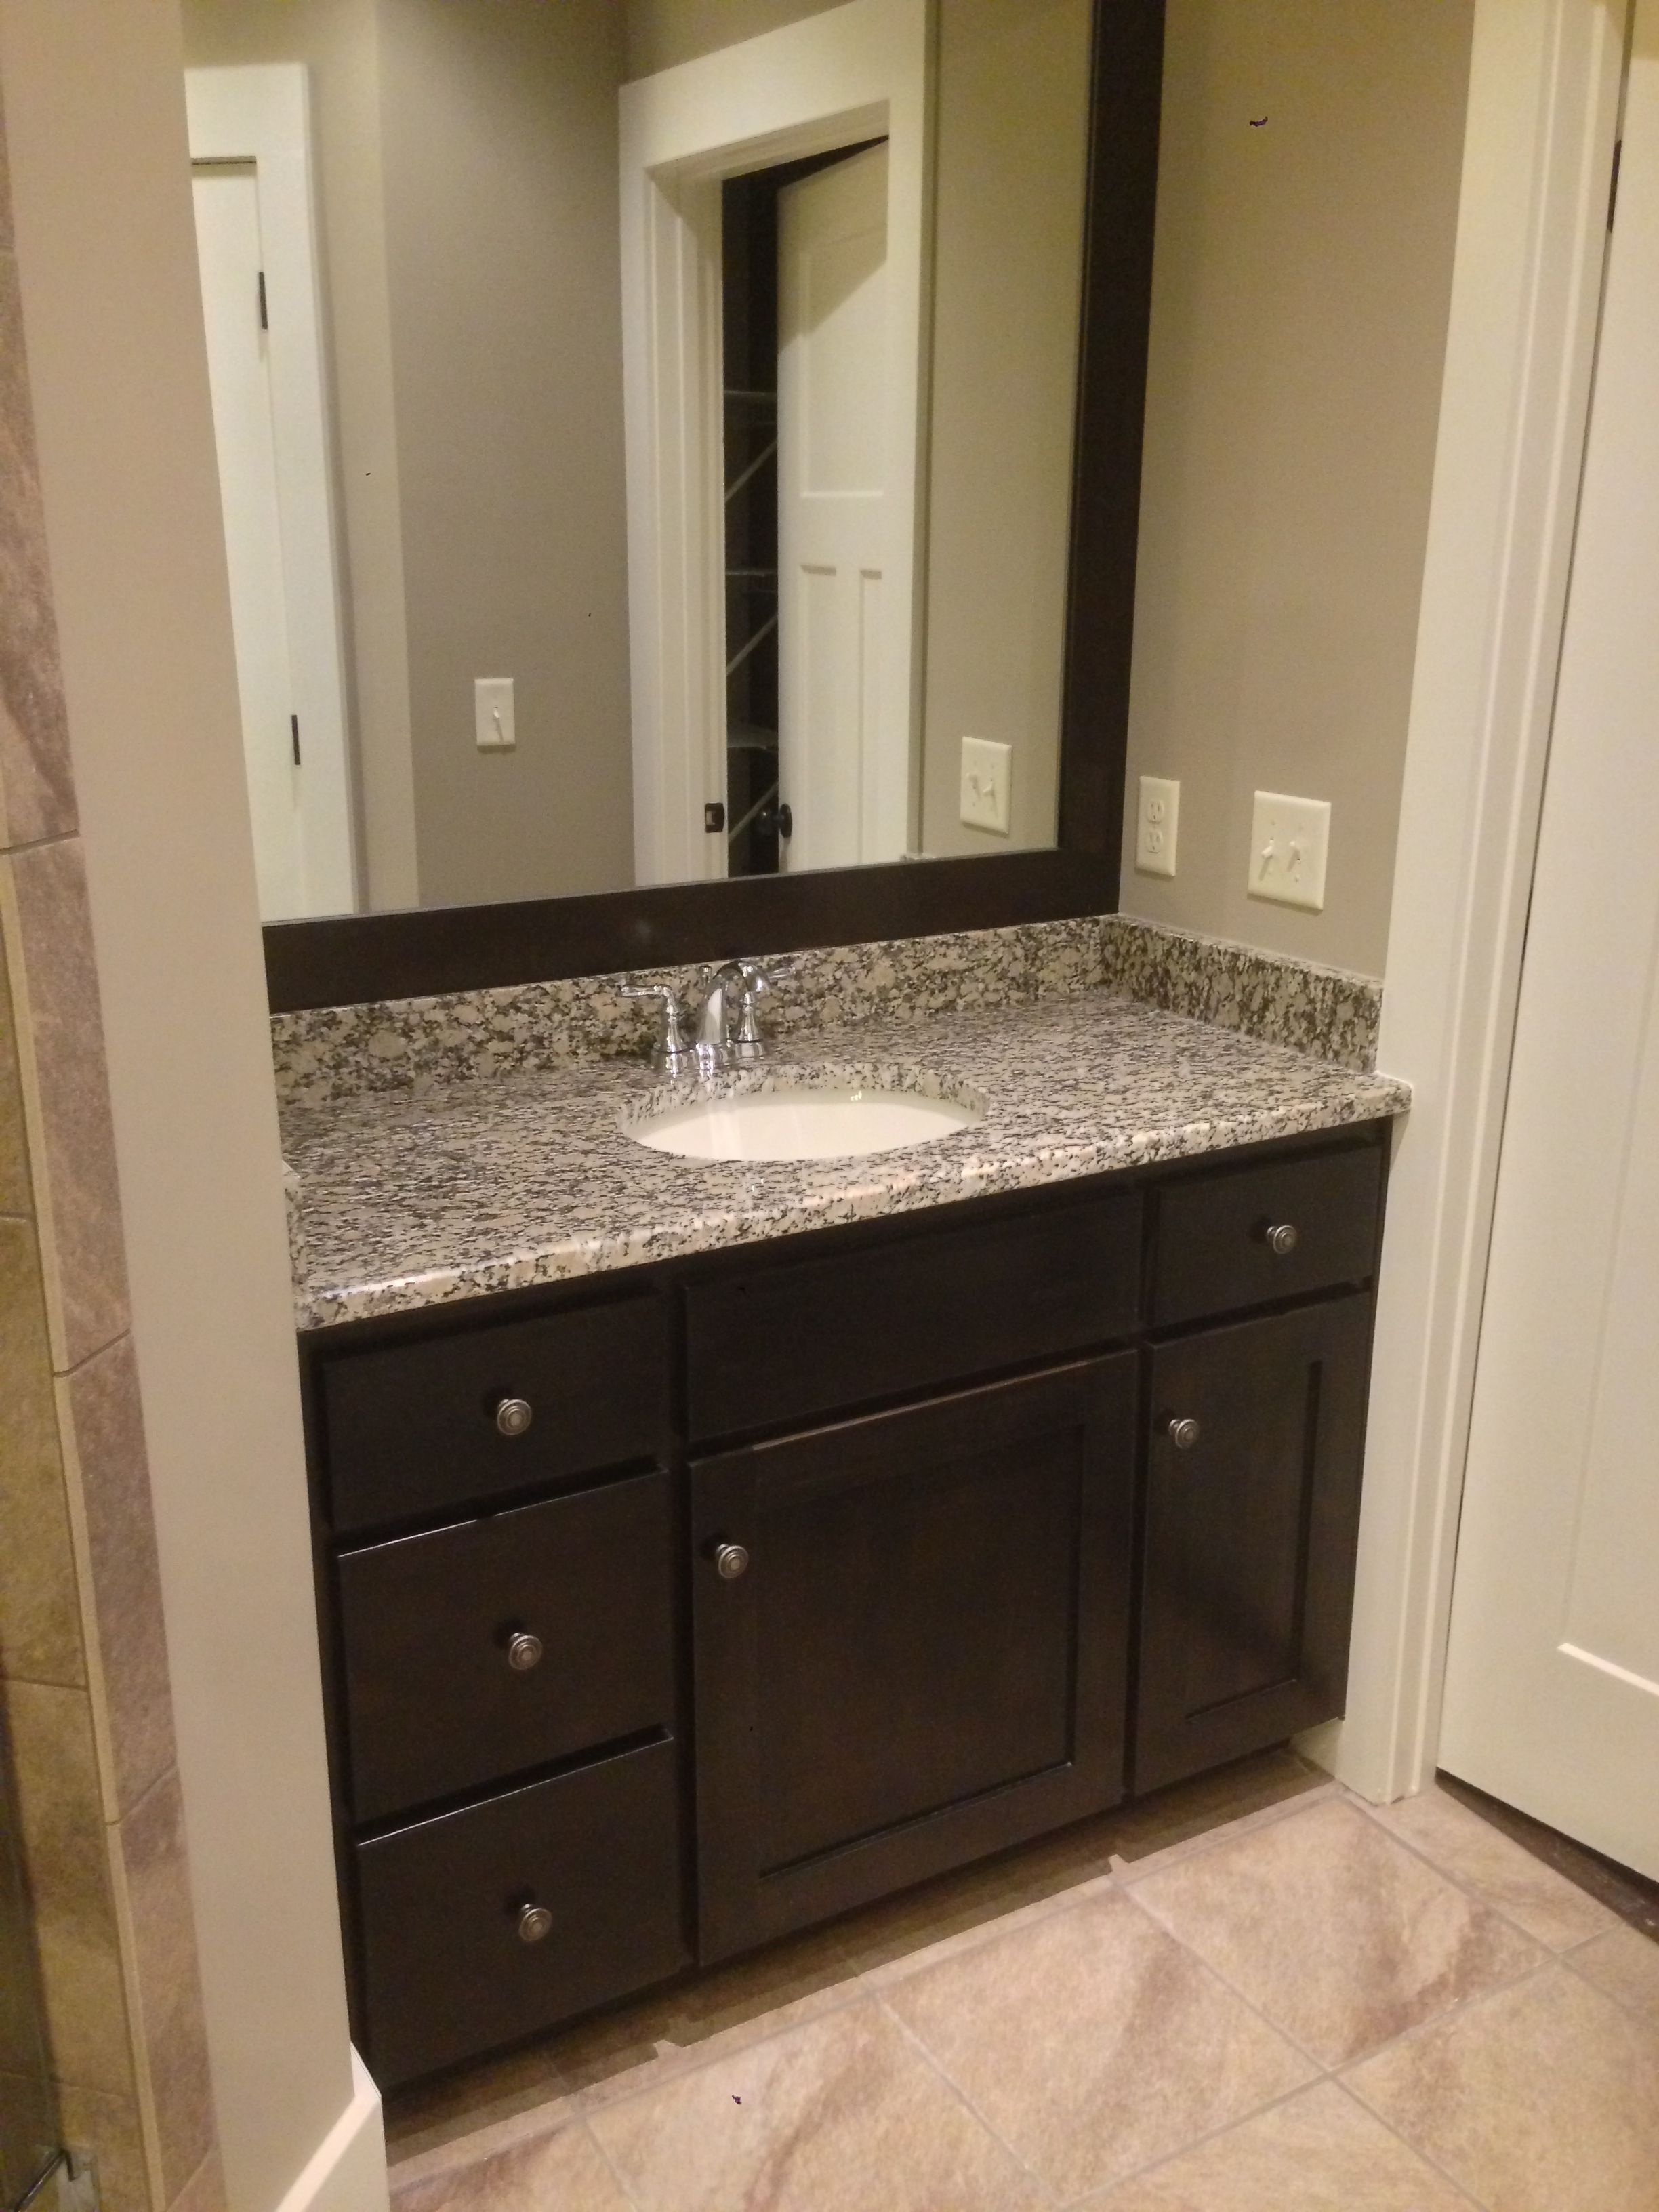 Ebony Stained Bath Vanity With Mirror Frame Stained To Match Bathroom Floor Plans Framed Bathroom Mirror